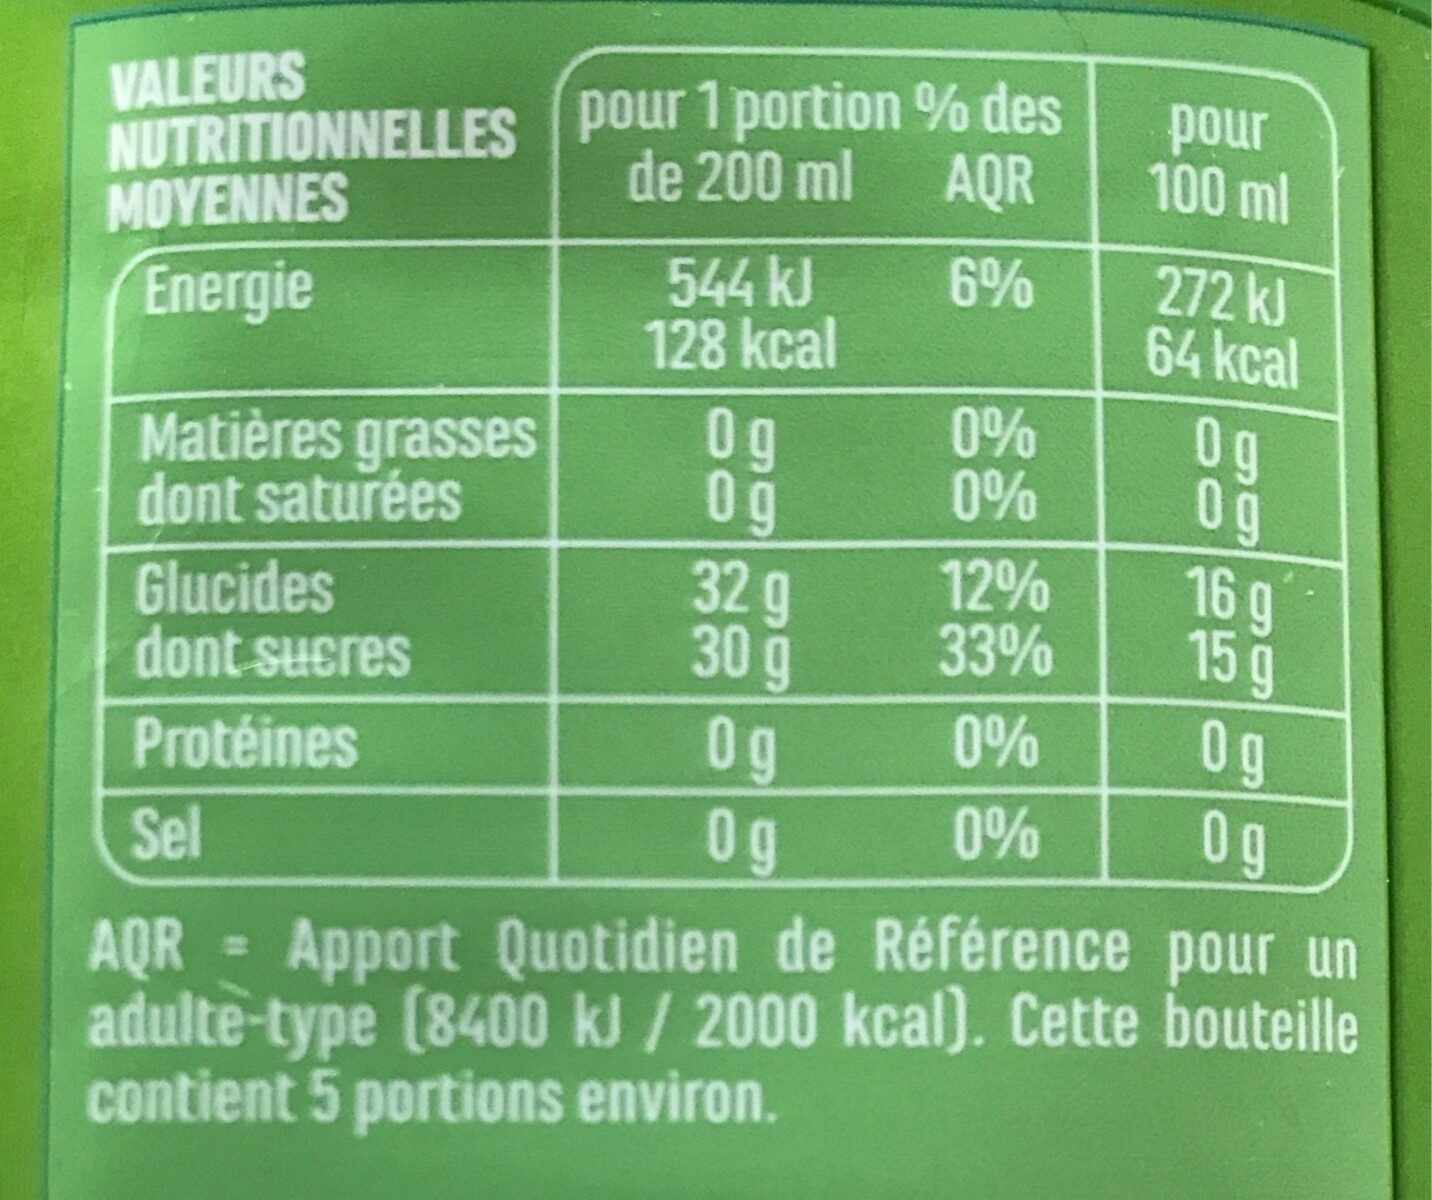 100% PUR JUS Raisin blanc & muscat - Nutrition facts - fr